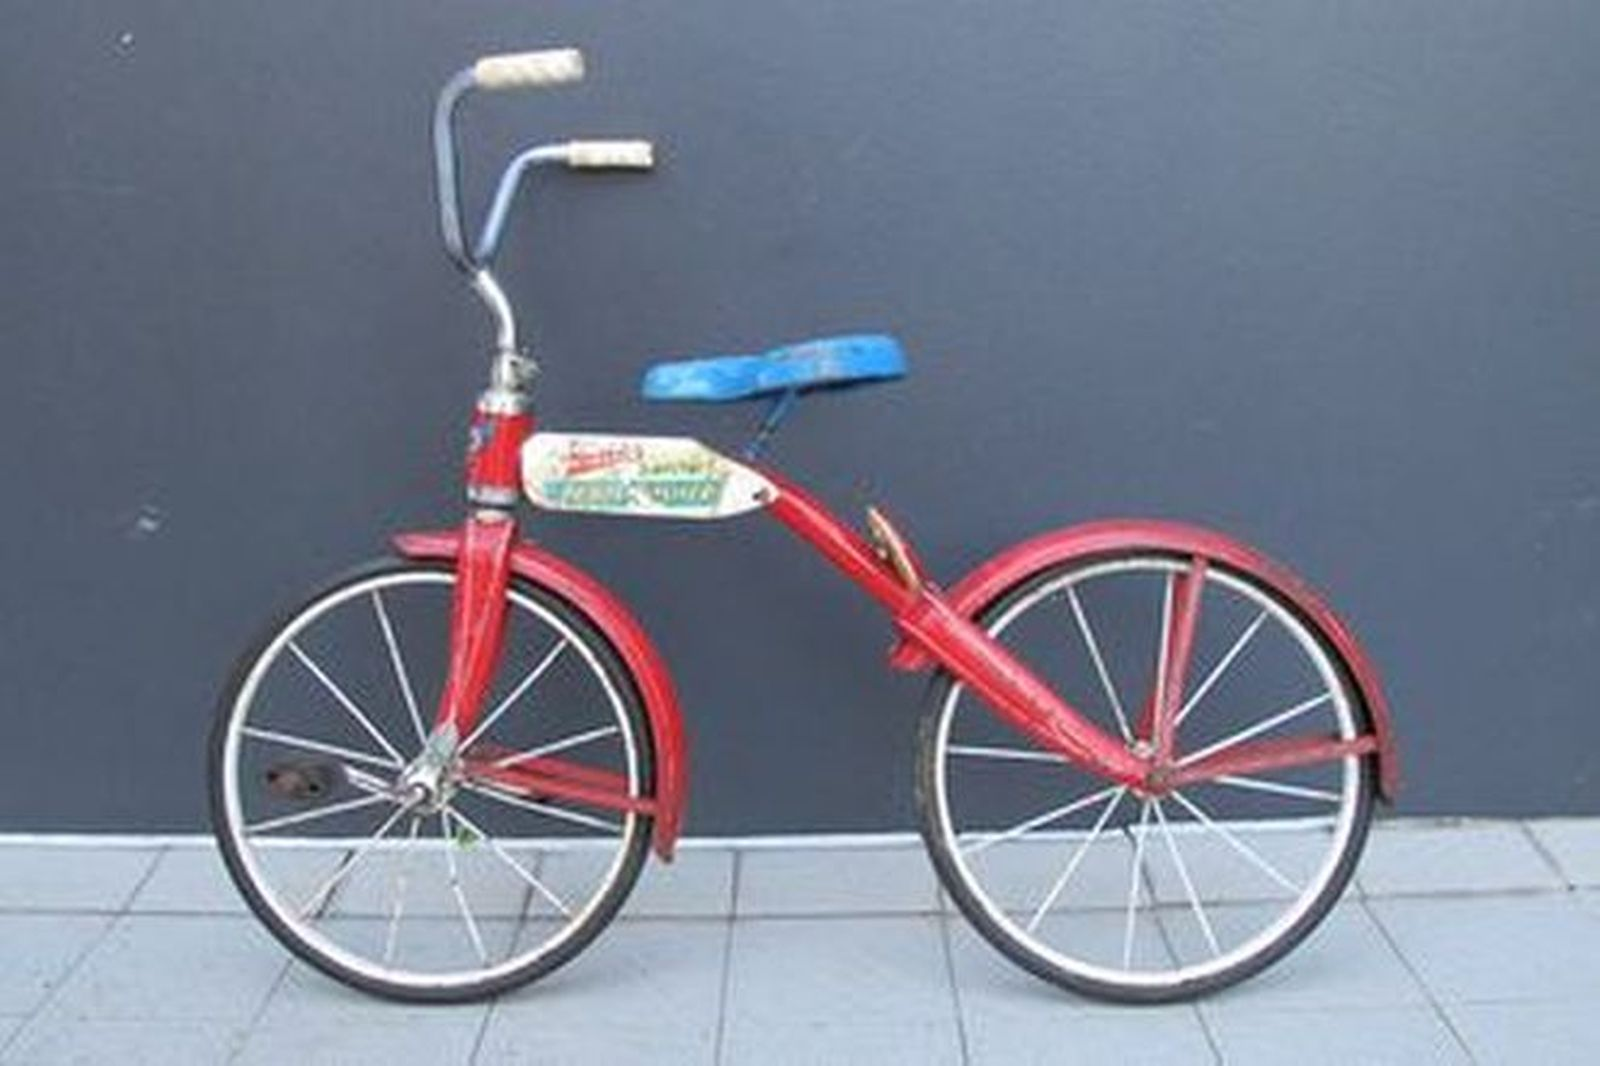 c1950's Cyclops Childs Pedal Pusher Bicycle